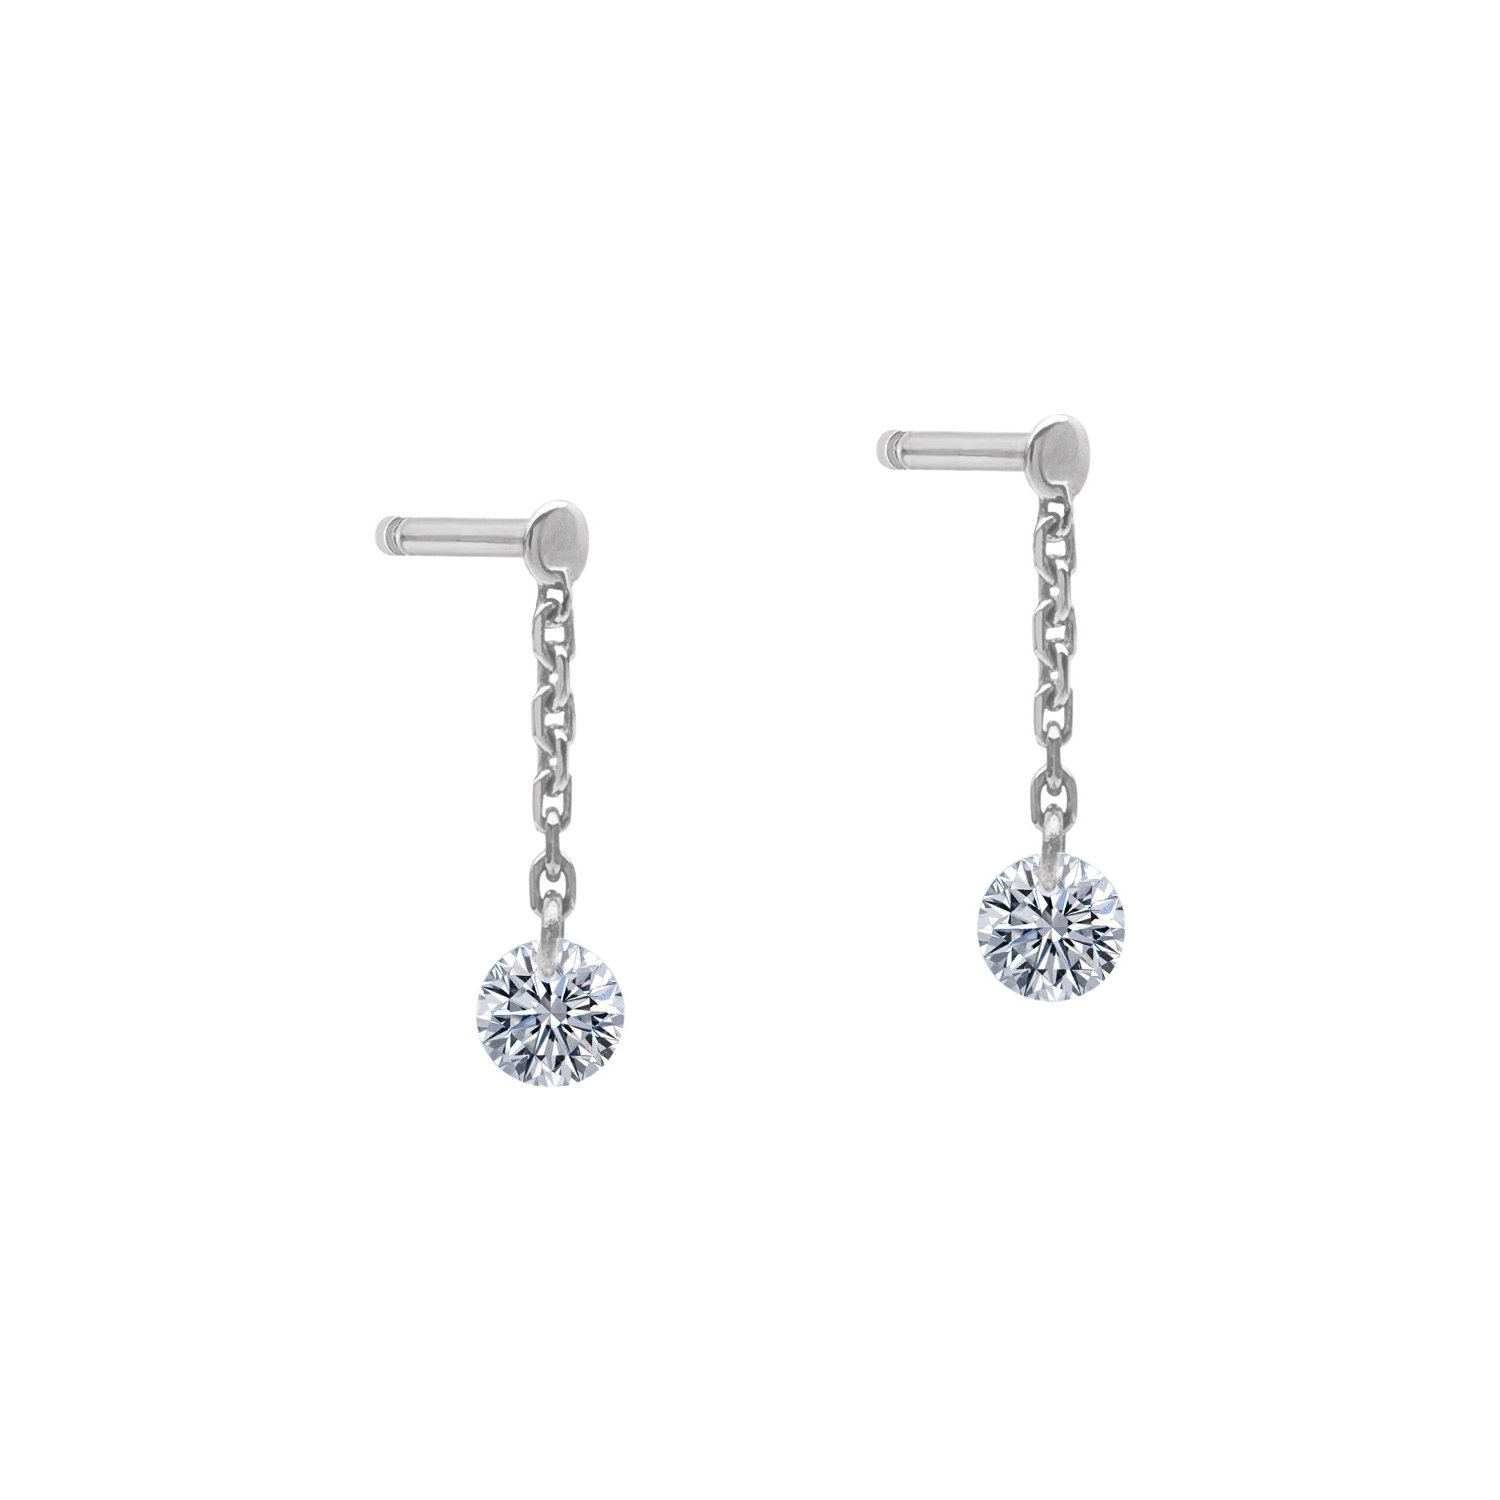 Boucles d'oreilles pendantes LA BRUNE & LA BLONDE 360° en or blanc et diamants de 0.20ct